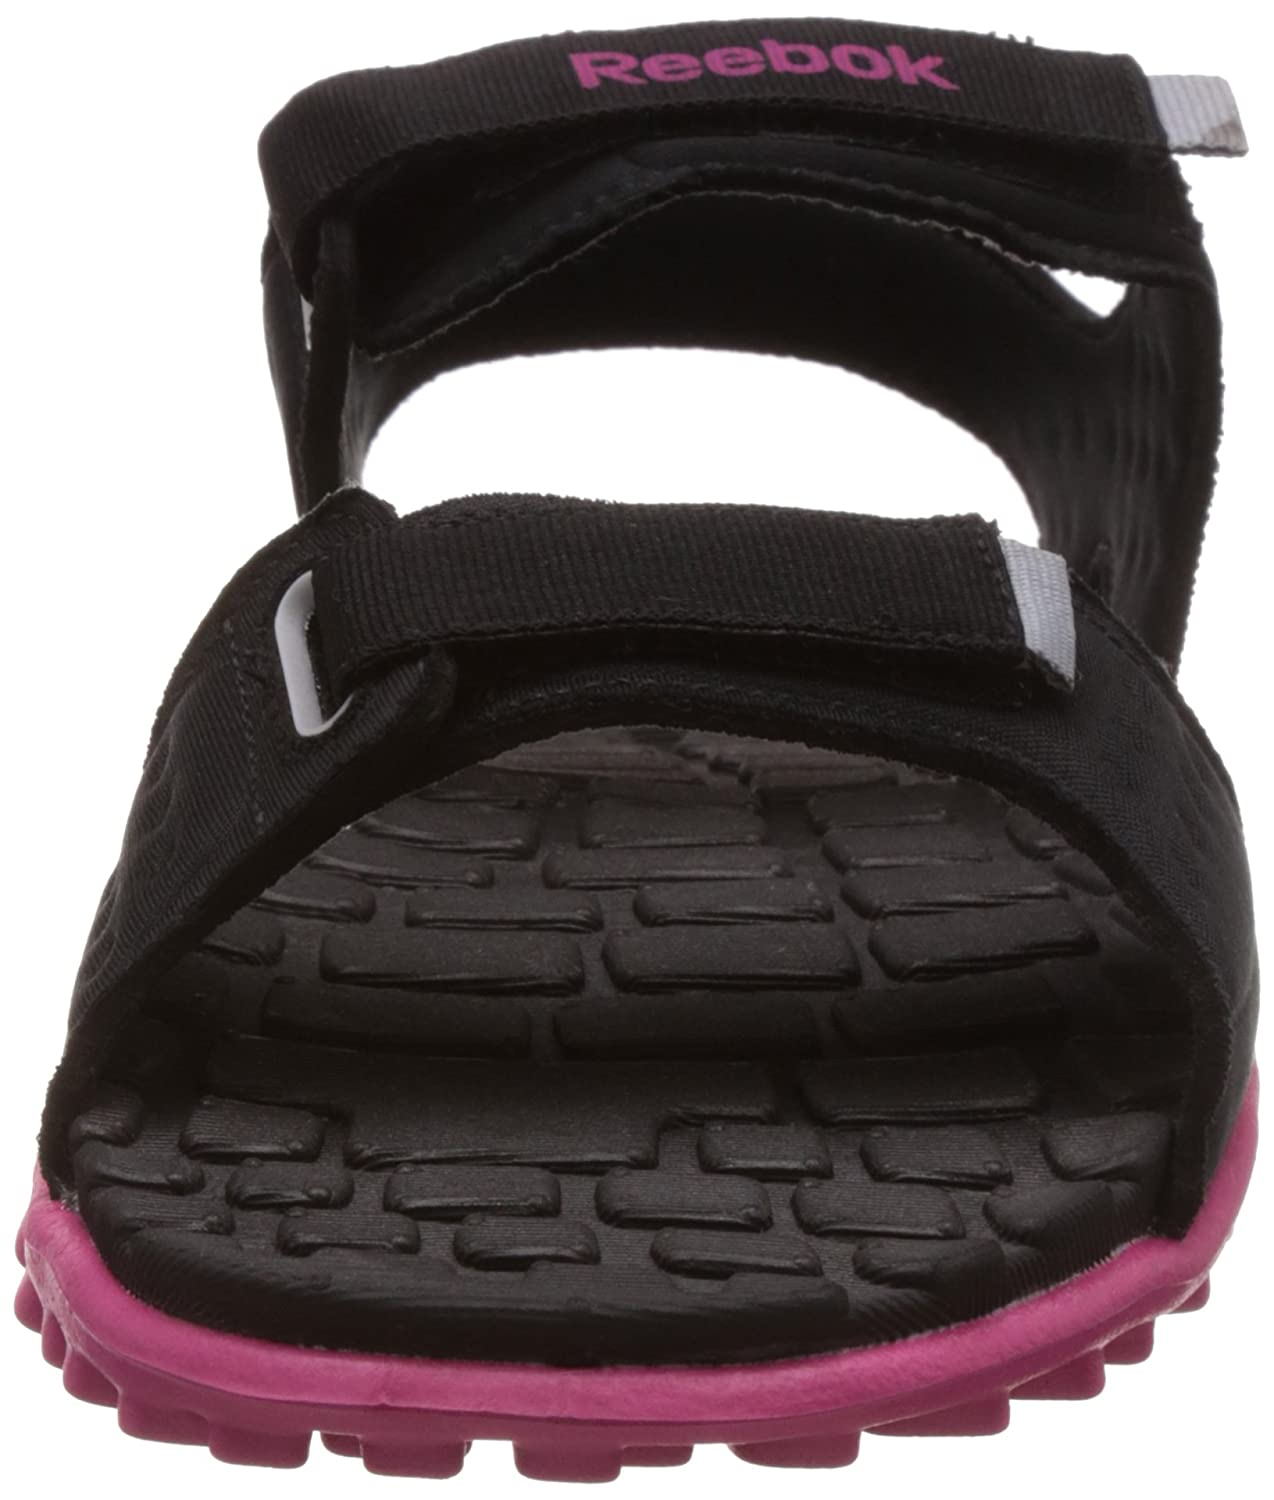 a70e796baa30 Reebok Unisex Ultra Flex Sandals and Floaters  Buy Online at Low Prices in  India - Amazon.in